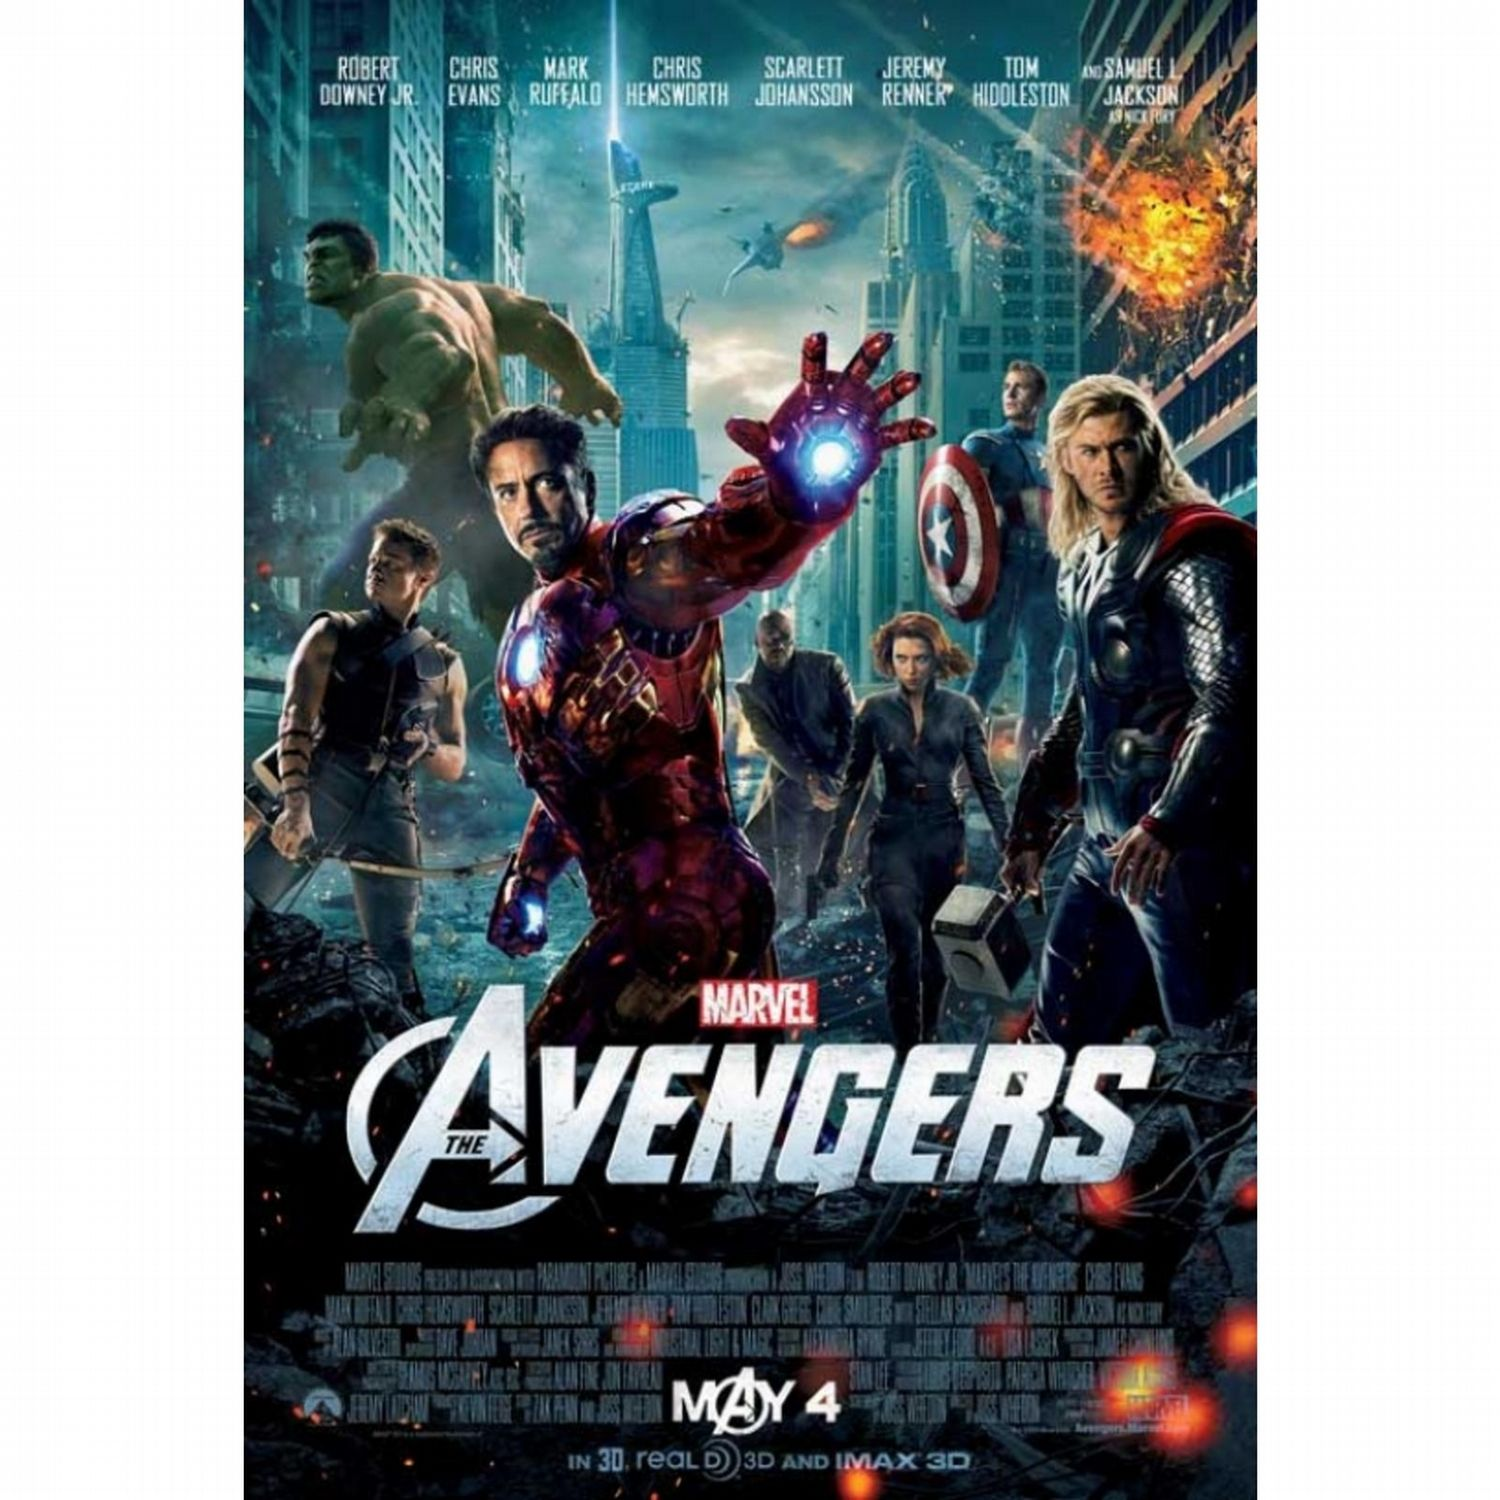 Pin By Veronica Zurita On Movies Avengers Poster Avengers Movies Avengers Movie Posters